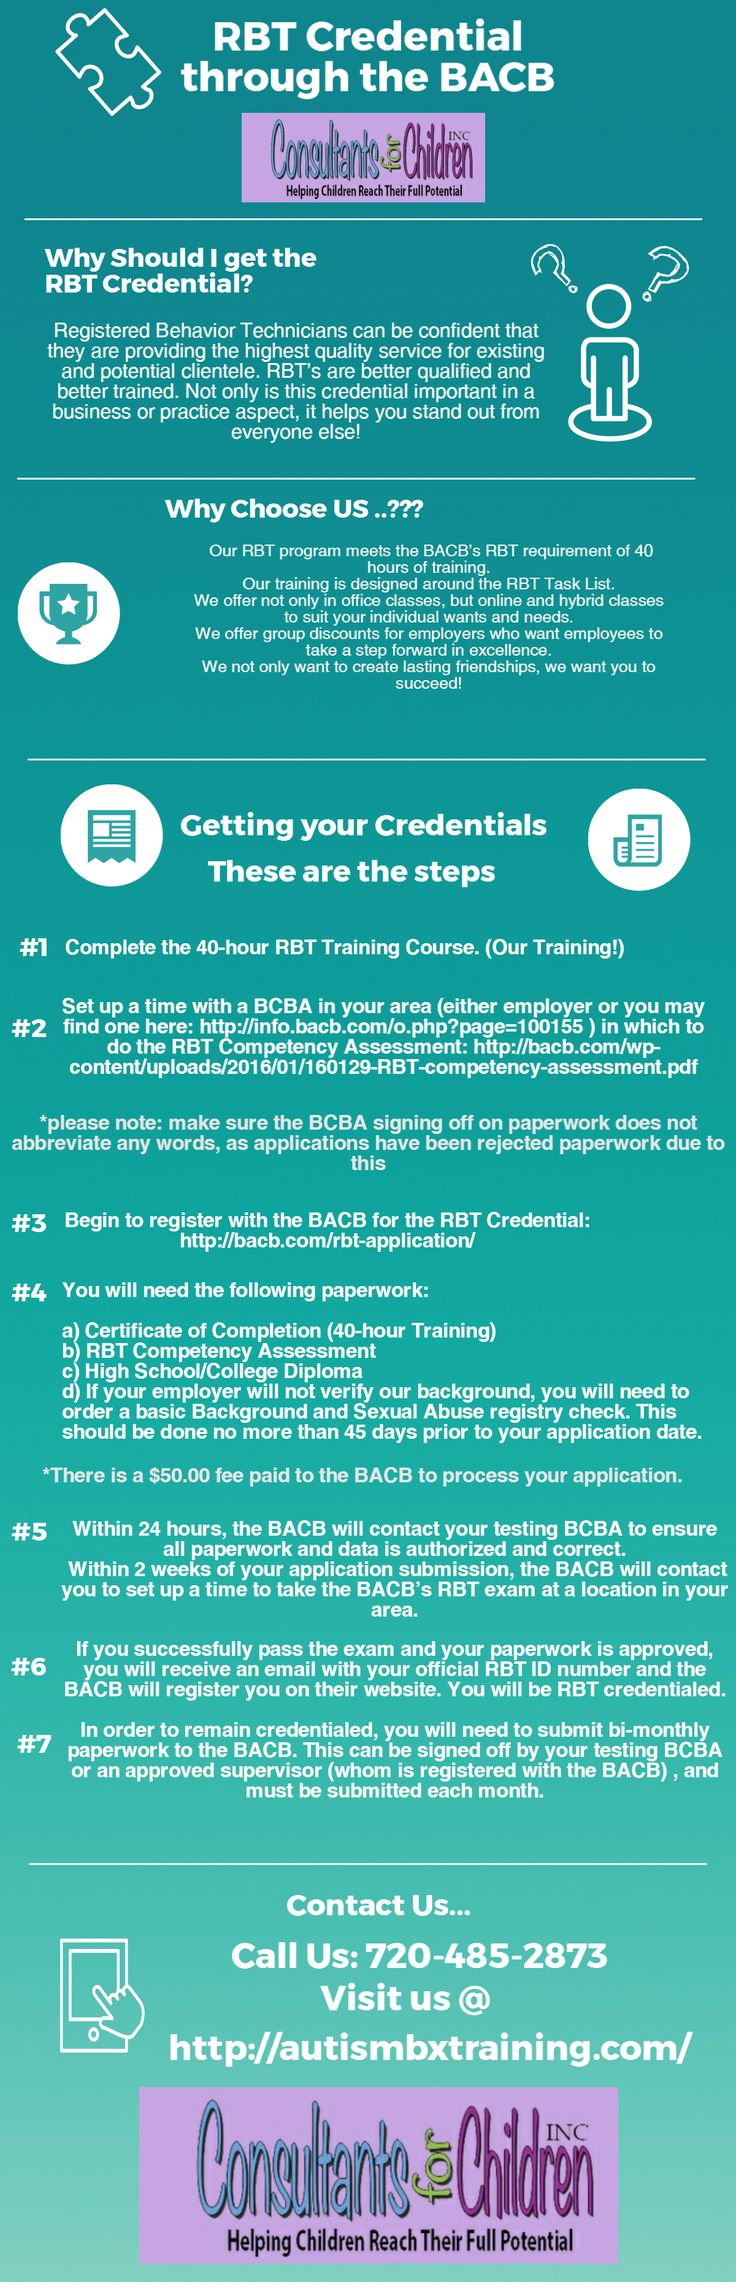 Looking for RBT credential through the bacb? Consultants